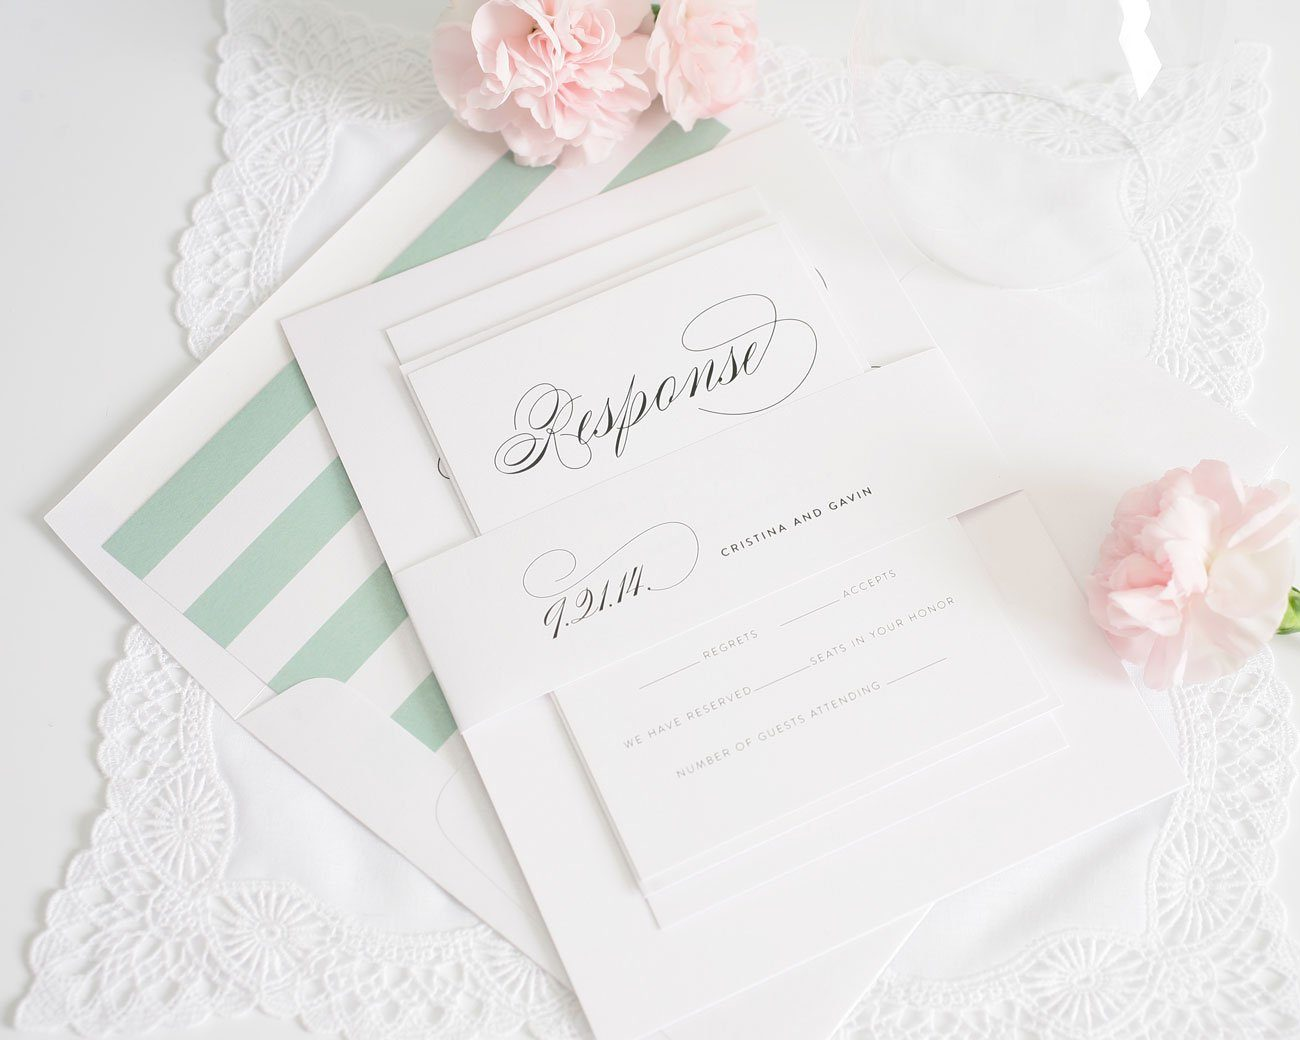 Script wedding invitations in jade